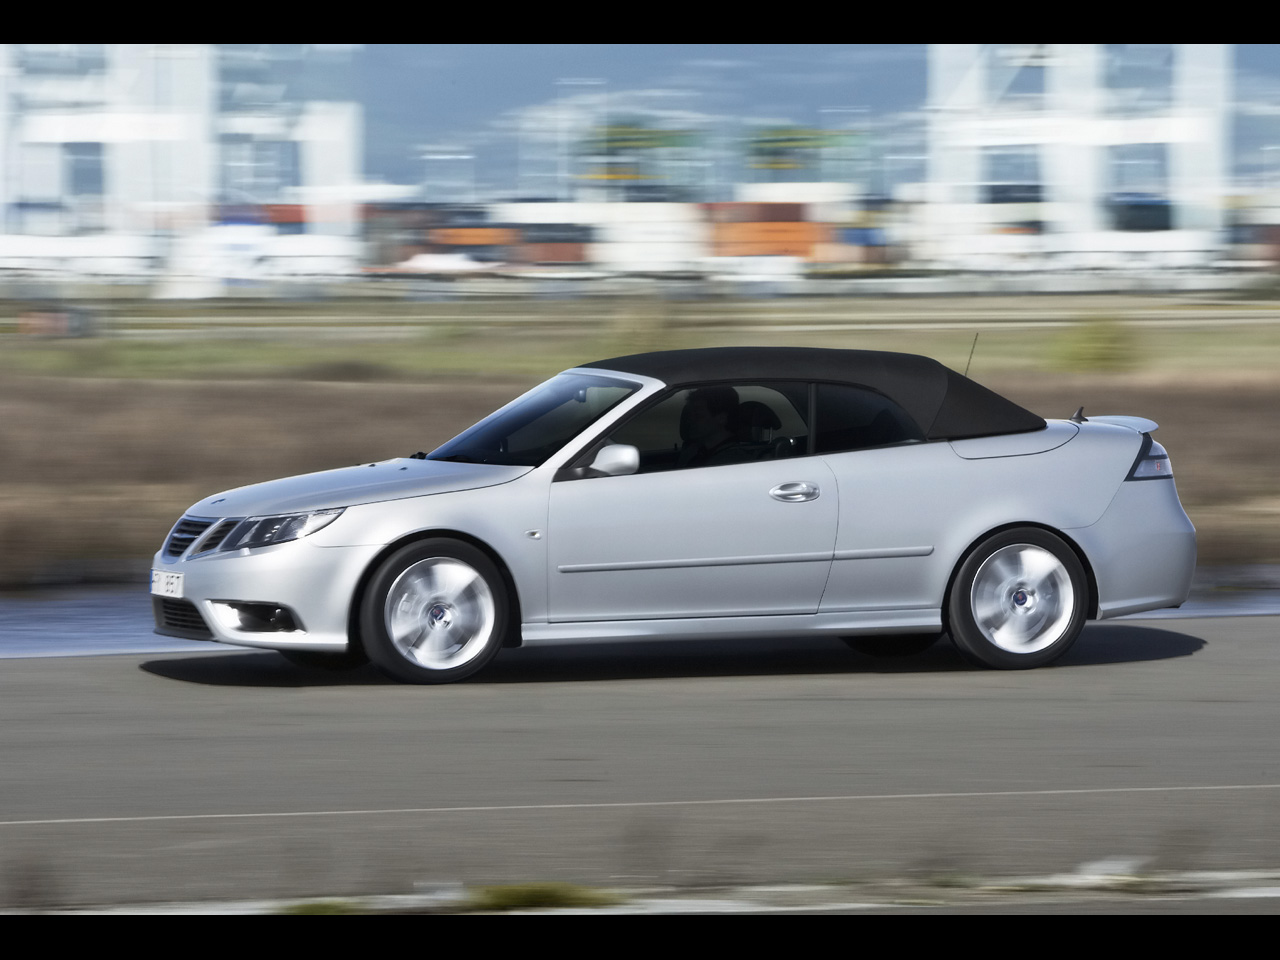 saab 9 3 cabriolet photos and comments. Black Bedroom Furniture Sets. Home Design Ideas